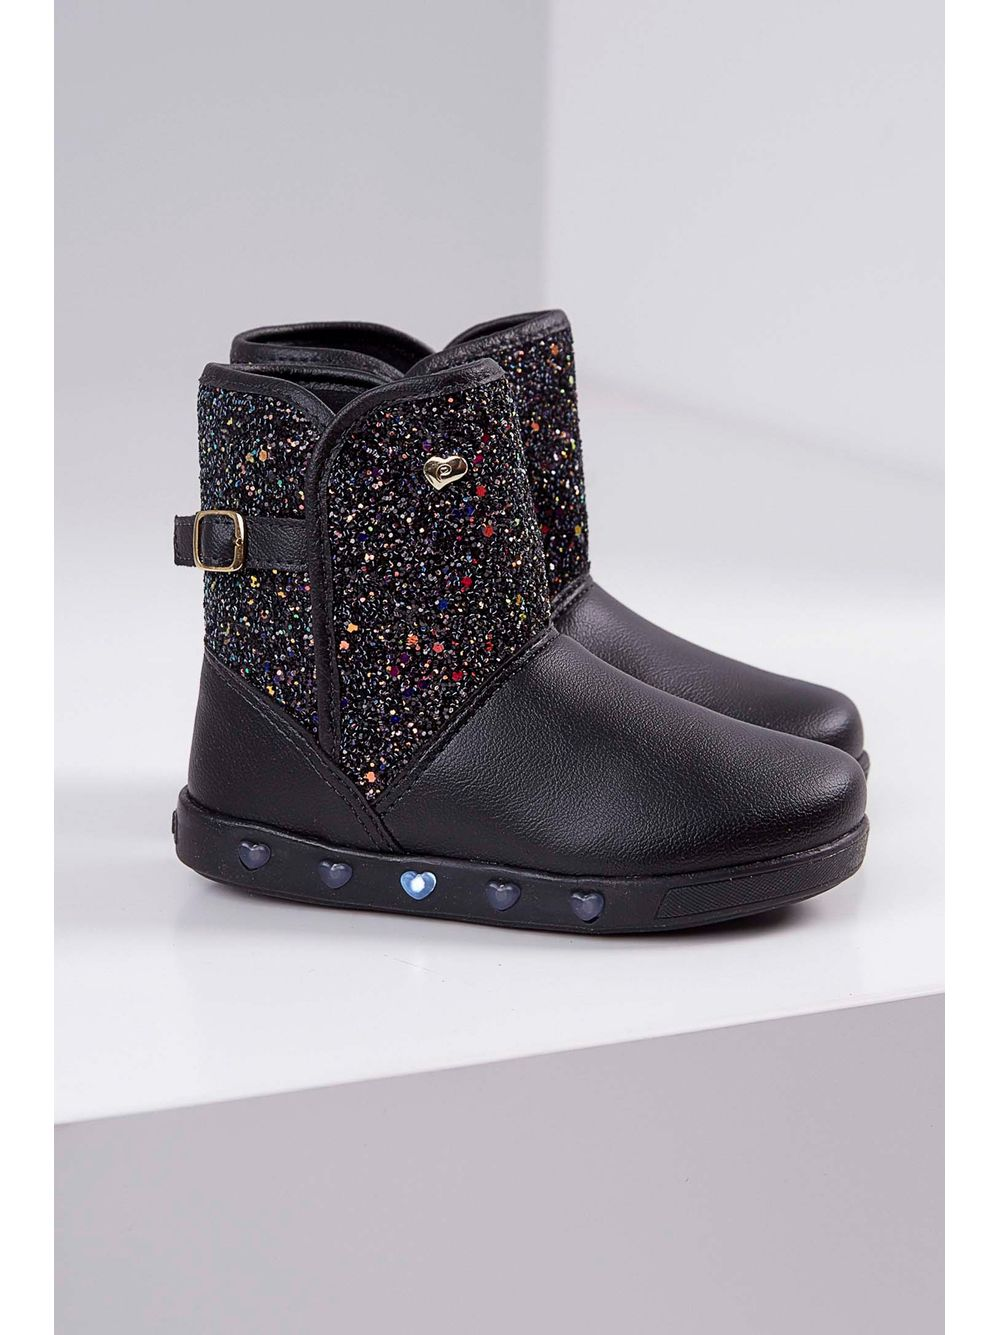 b43f73f208 Previous. Bota-Casual-Infantil-Pampili-Glitter-Led-Preto ...